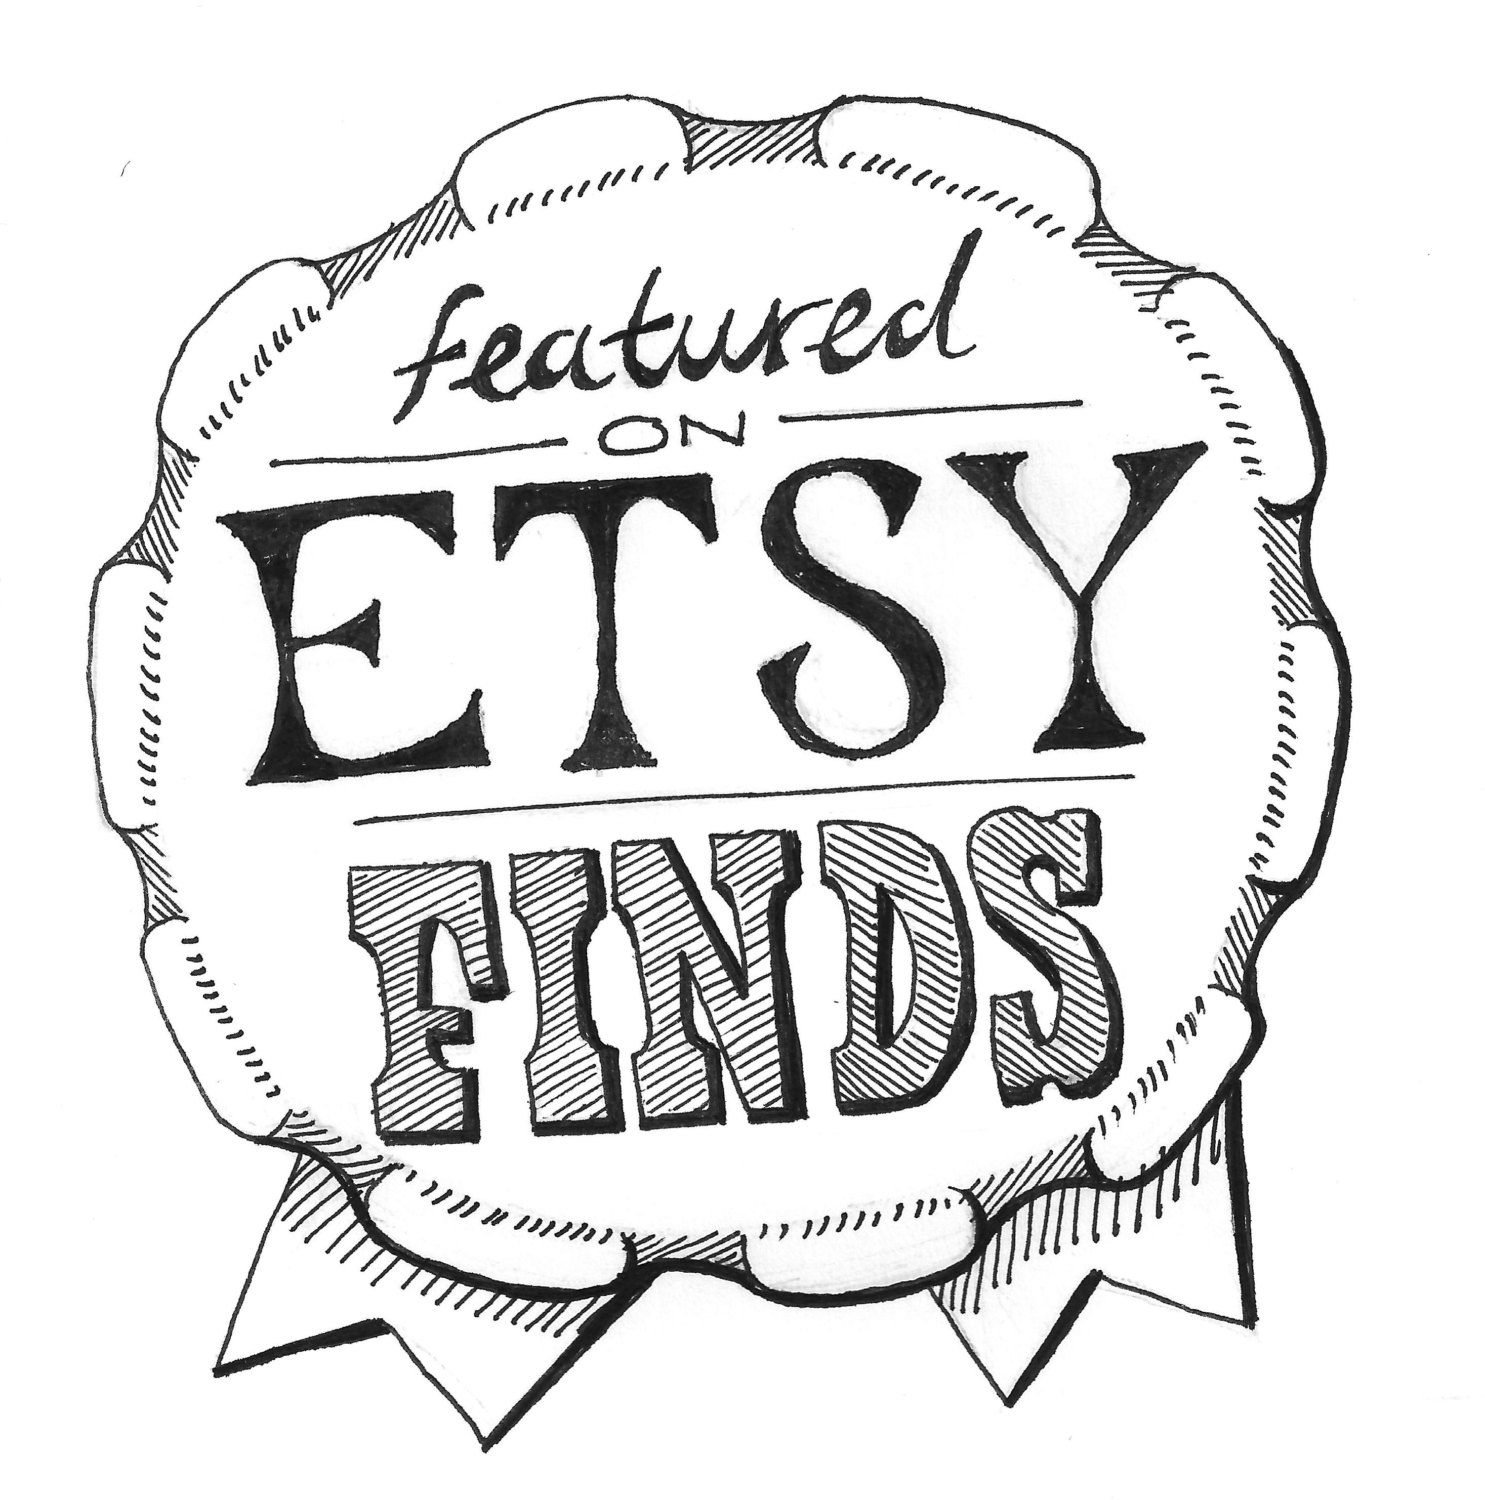 Etsy-Finds-badge.jpg